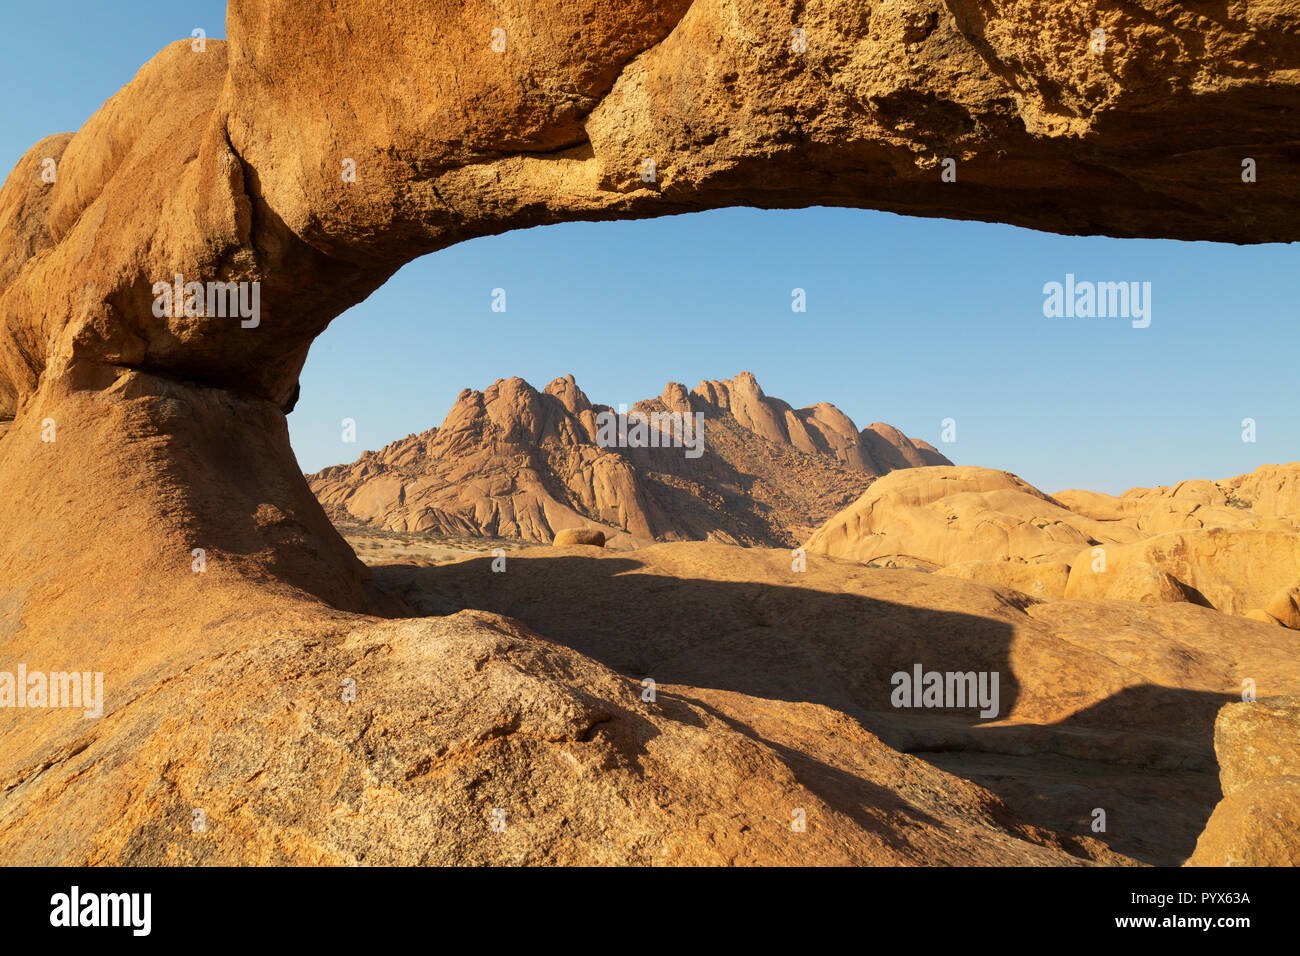 Namibia landscape; rock arch at Spitzkoppe, example of African landscapes, Spitzkoppe, Namibia Africa - Stock Image